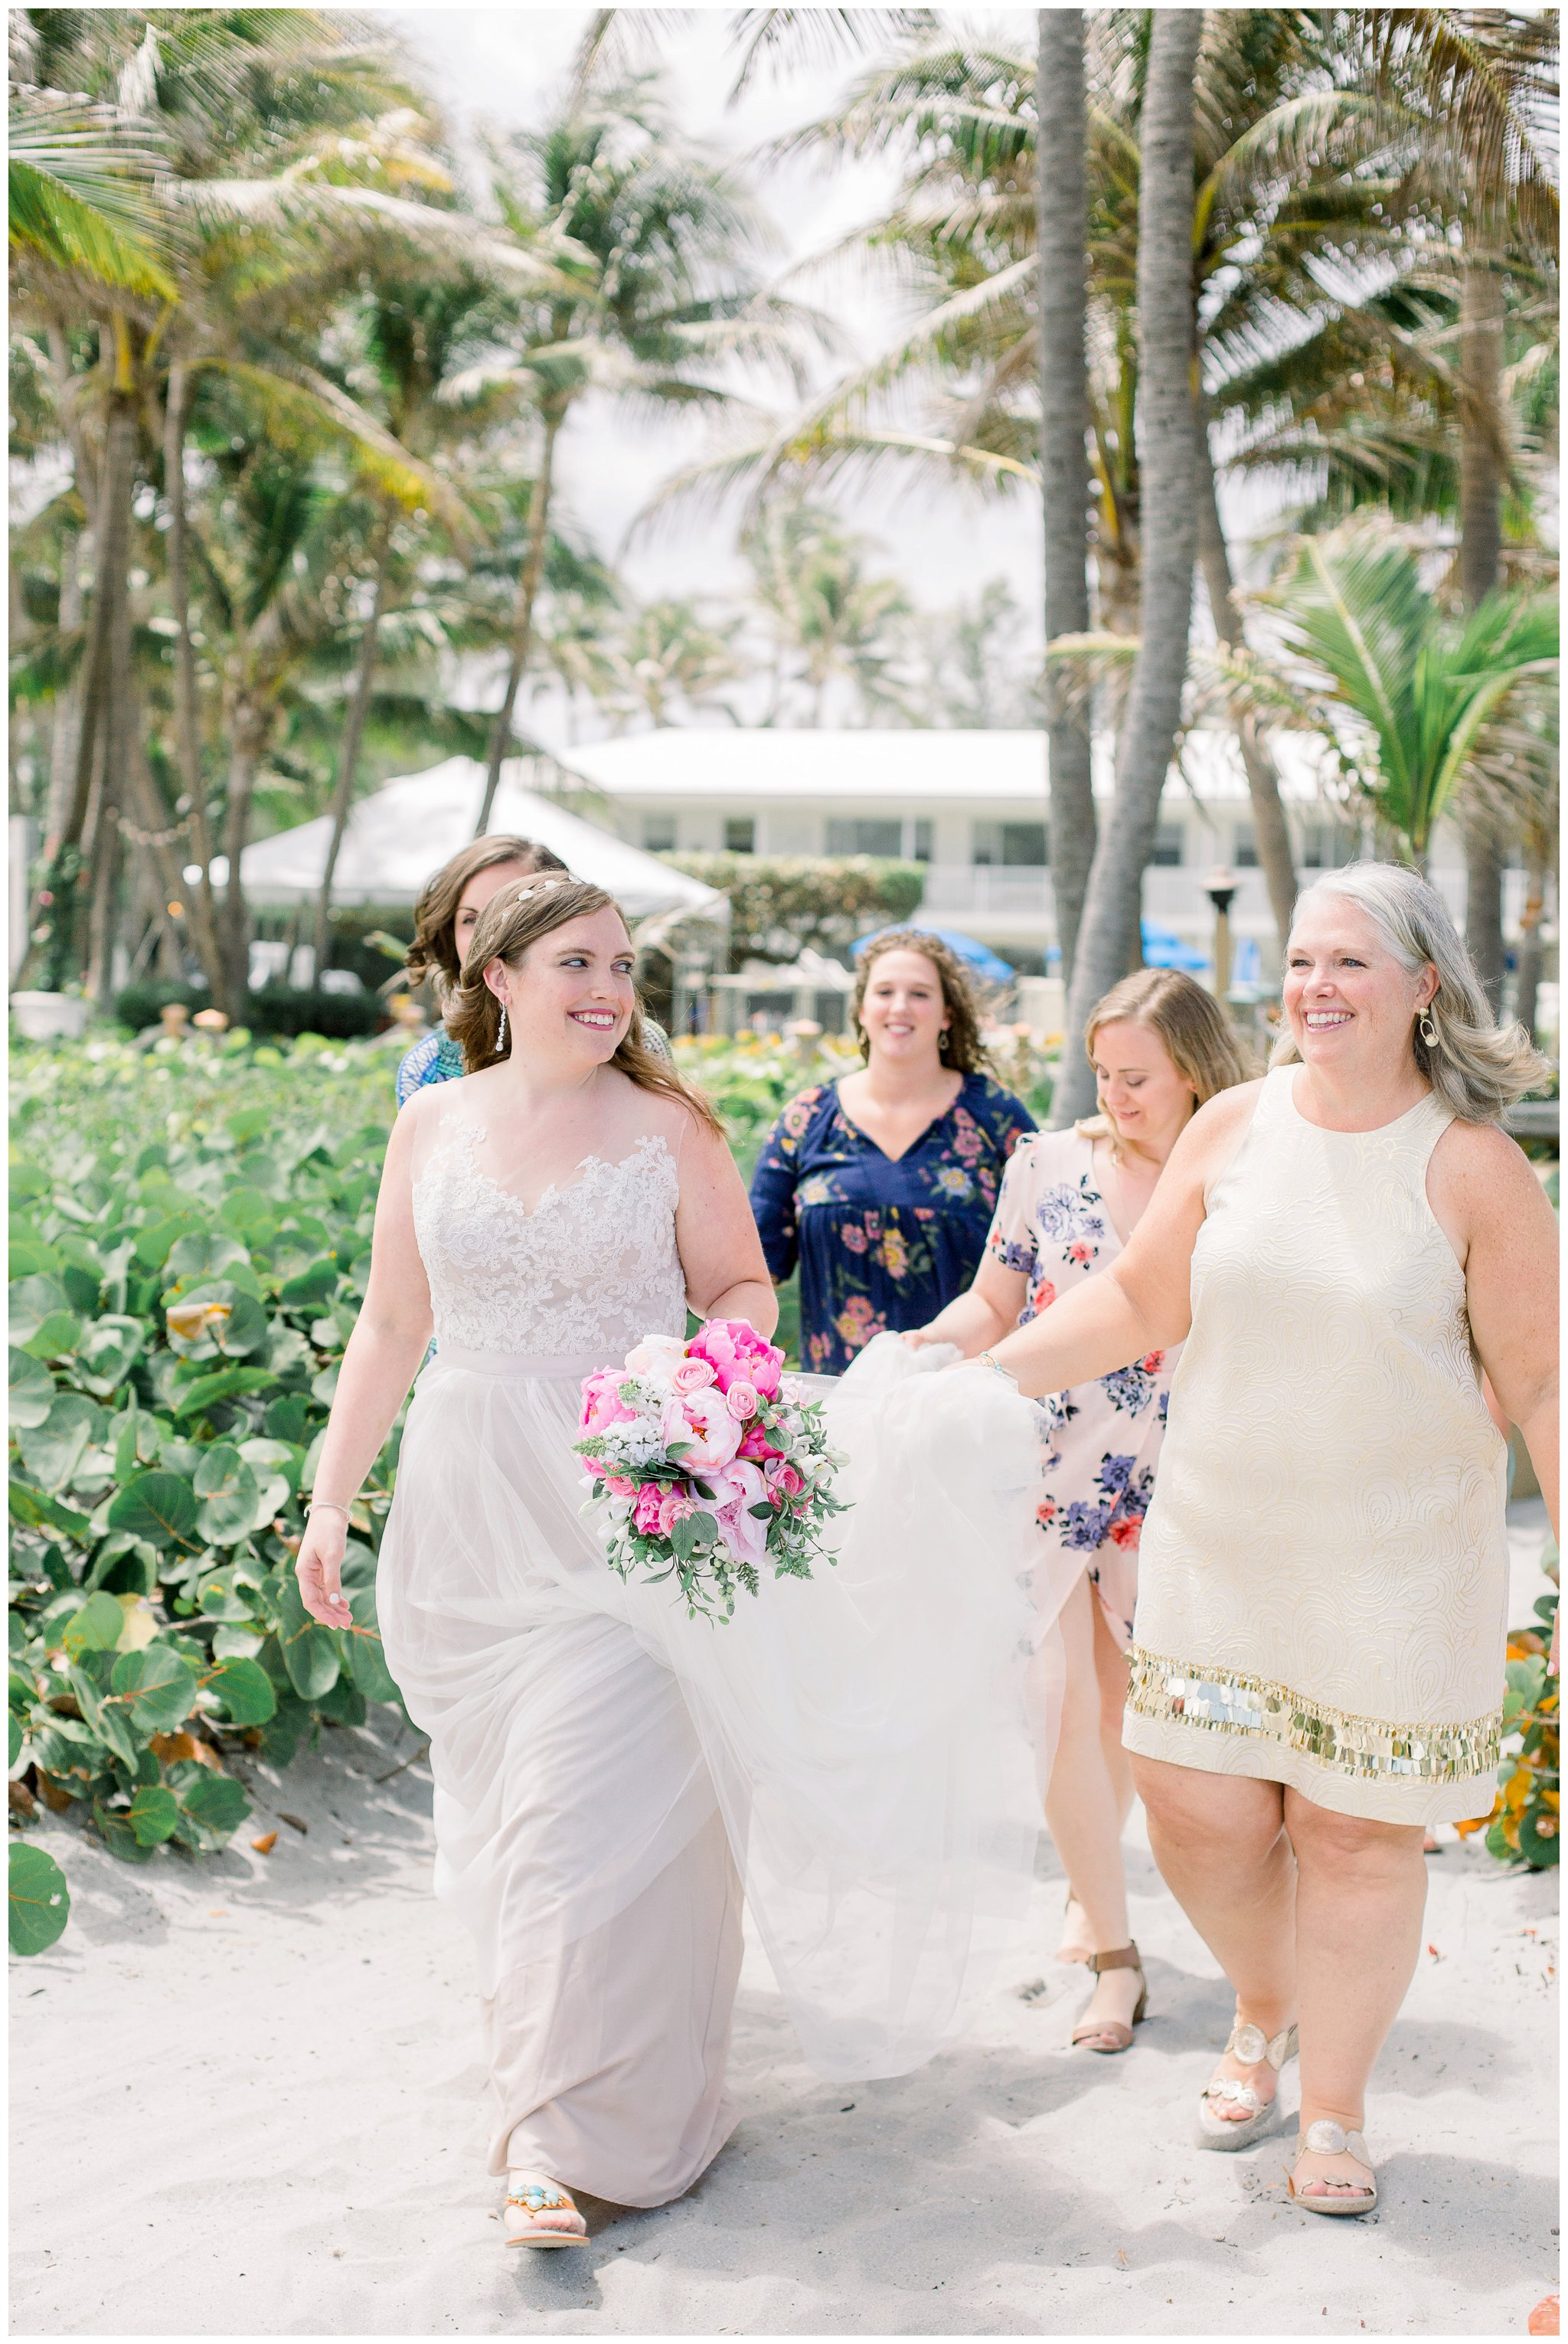 South Florida Wedding Photographer- Palm Beach Wedding Photographer- Jupiter Wedding Photographer- Florida Photographer- Wright by the Sea Wedding- Wright by the Sea- Sturat Florida Wedding_0015.jpg